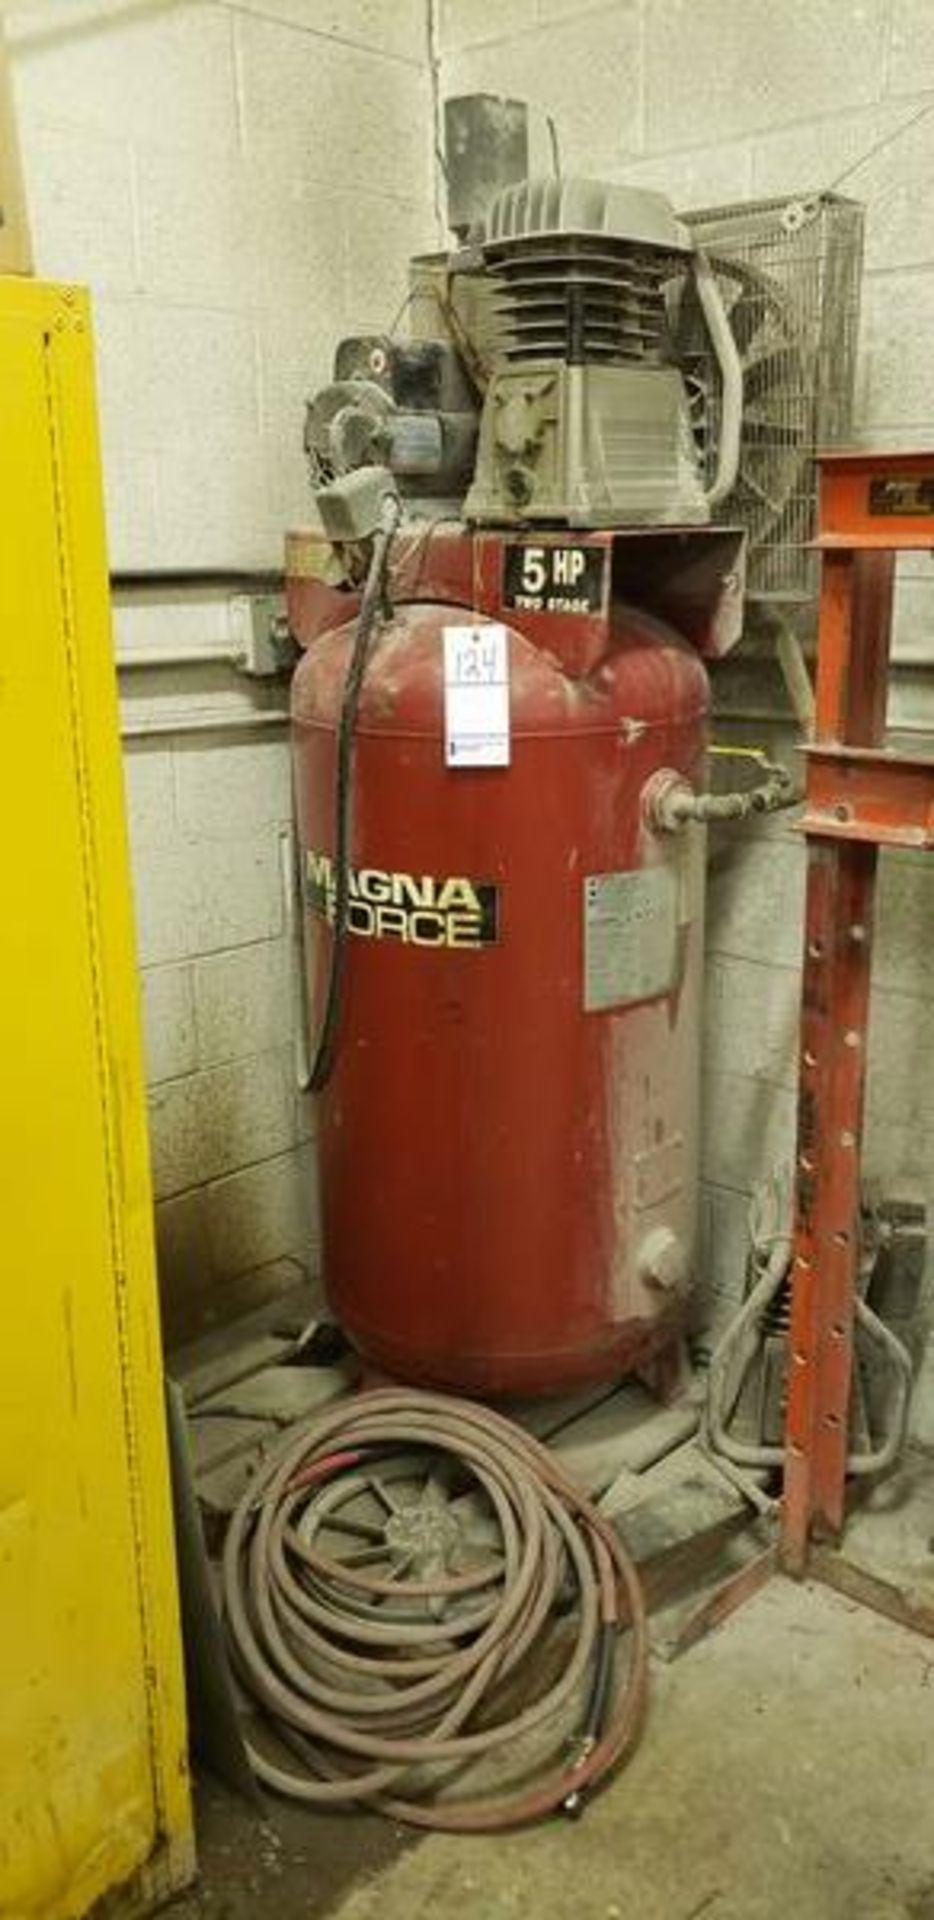 MAGNA FORCE 5HP TWO STAGE AIR COMPRESSOR